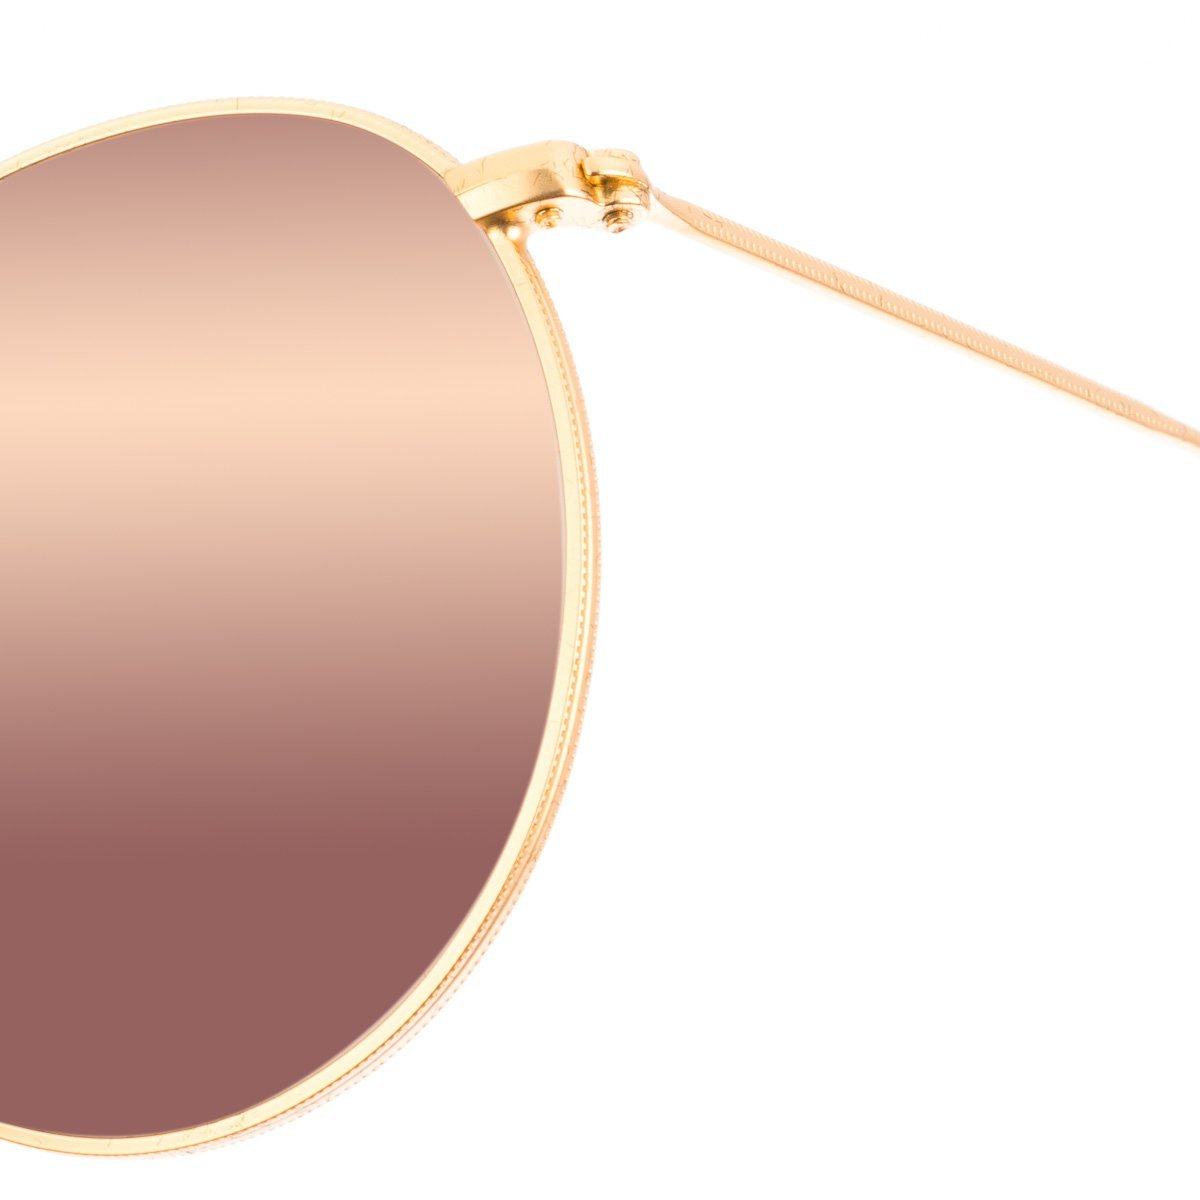 Ray-Ban RB3447 112/Z2 ROUND METAL - MATTE GOLD Frame BROWN MIRROR PINK Lenses 50mm Non-Polarized